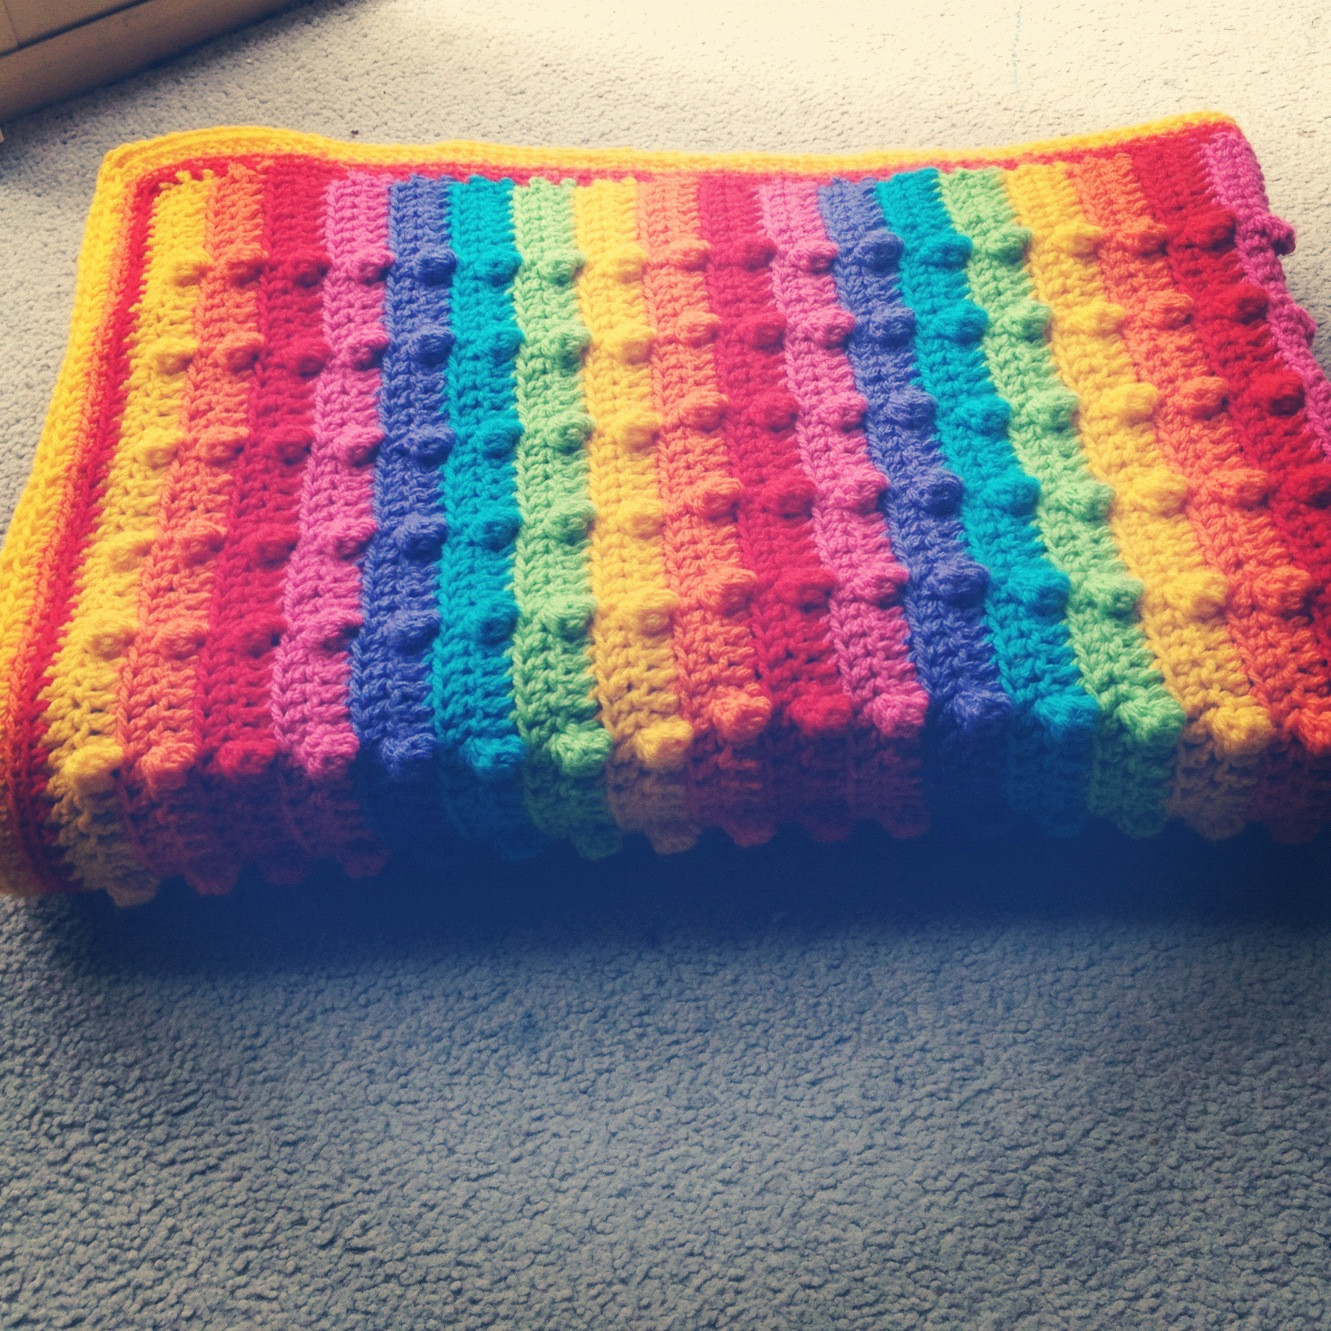 Rainbow Baby Blanket Elegant Three Beans In A Pod Bumpy Rainbow Blanket Tutorial Of Charming 42 Ideas Rainbow Baby Blanket